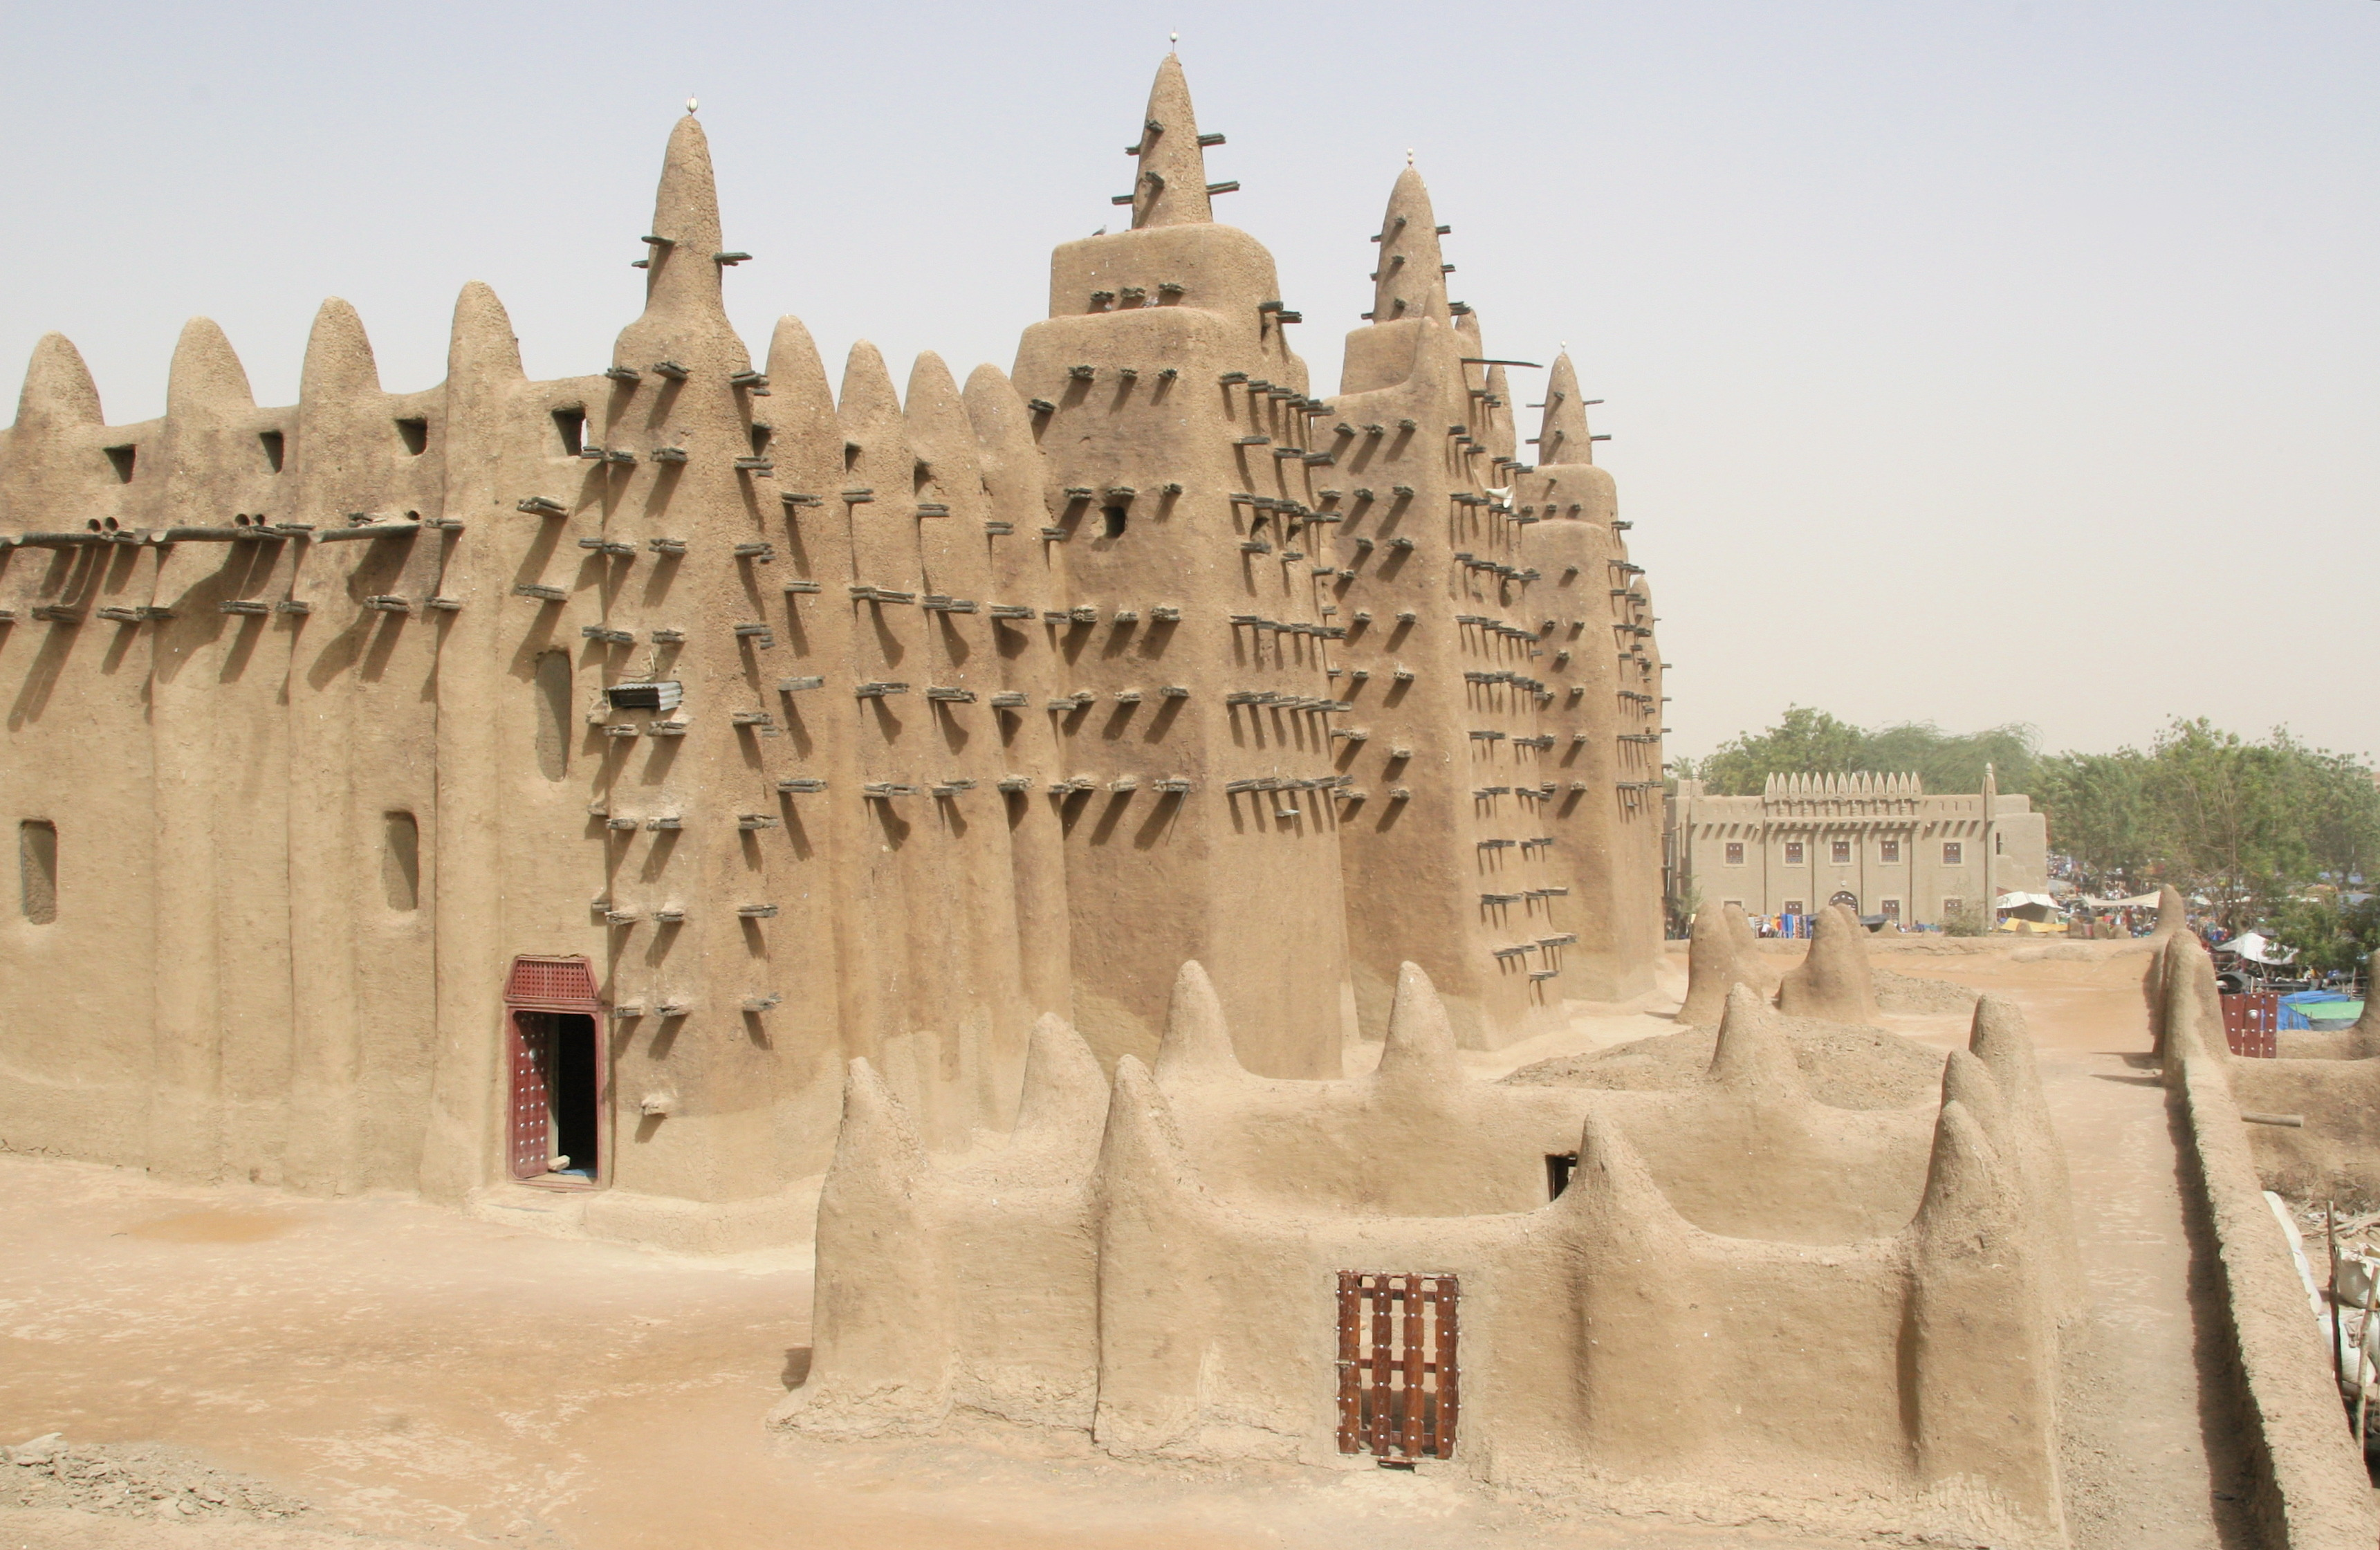 images of Mali Africa The Great Mosque Djenne Overview